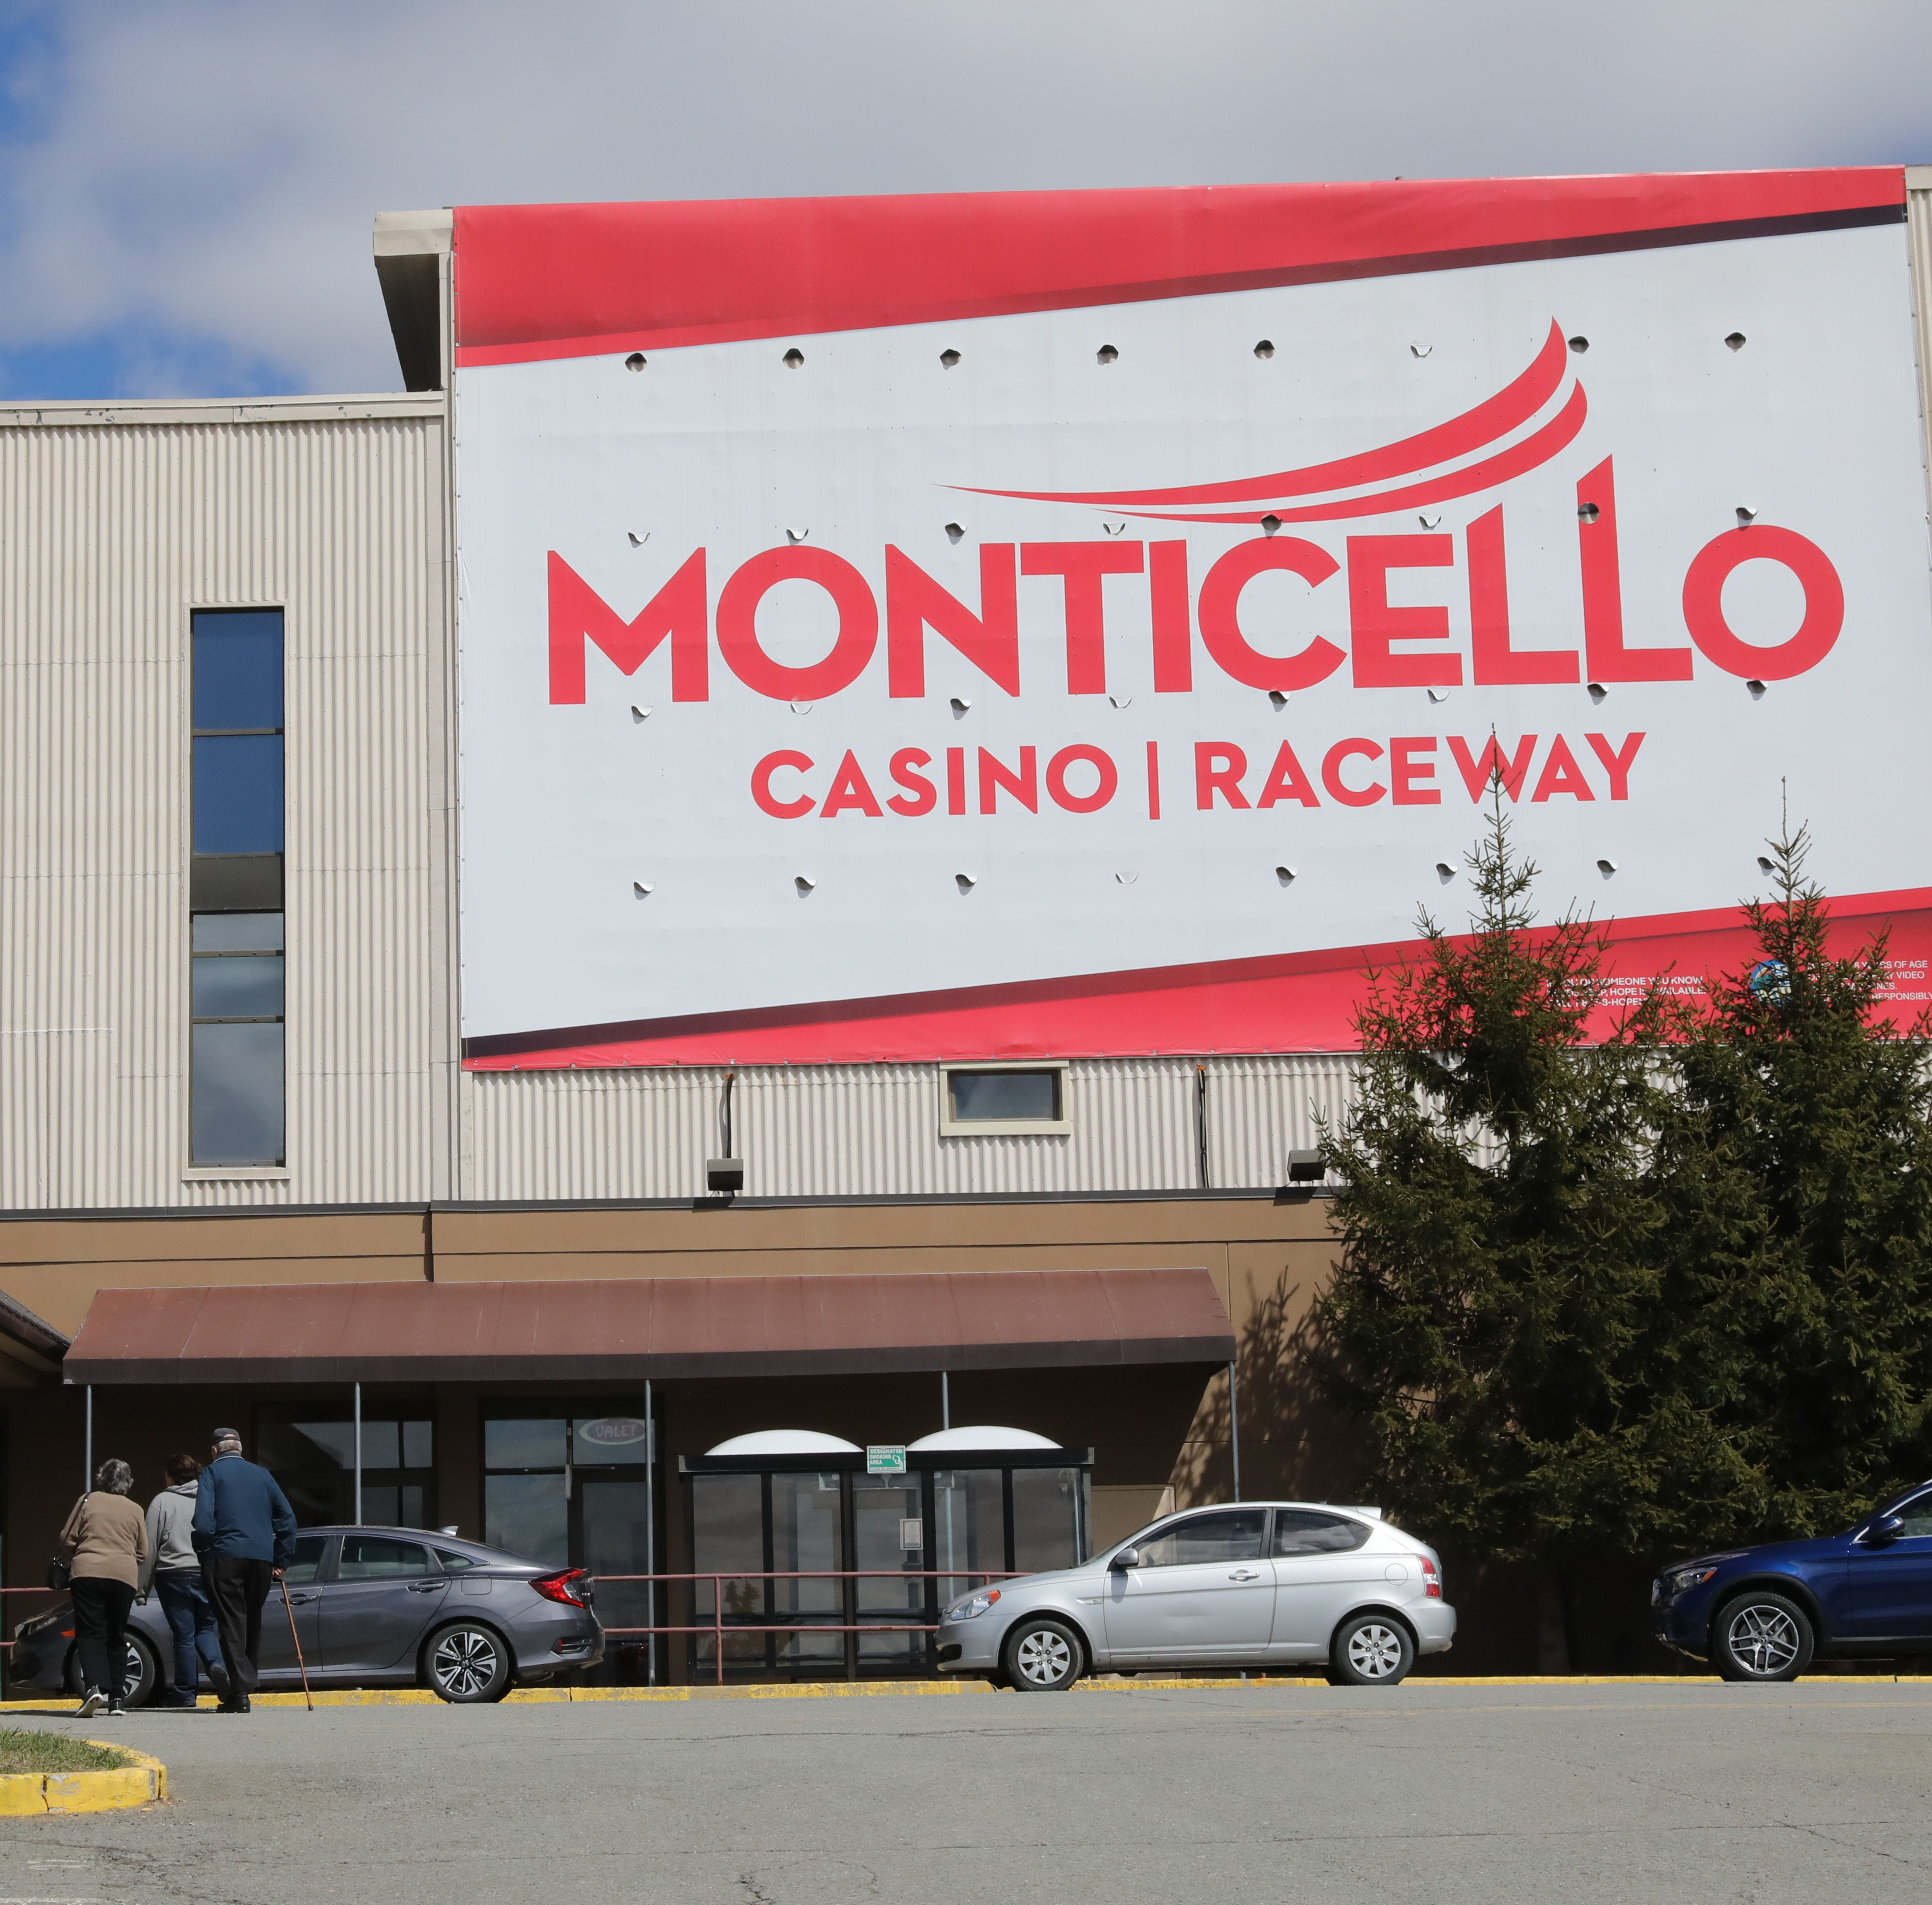 The exterior of the Monticello Casino Raceway in Monticello, April 10, 2019.